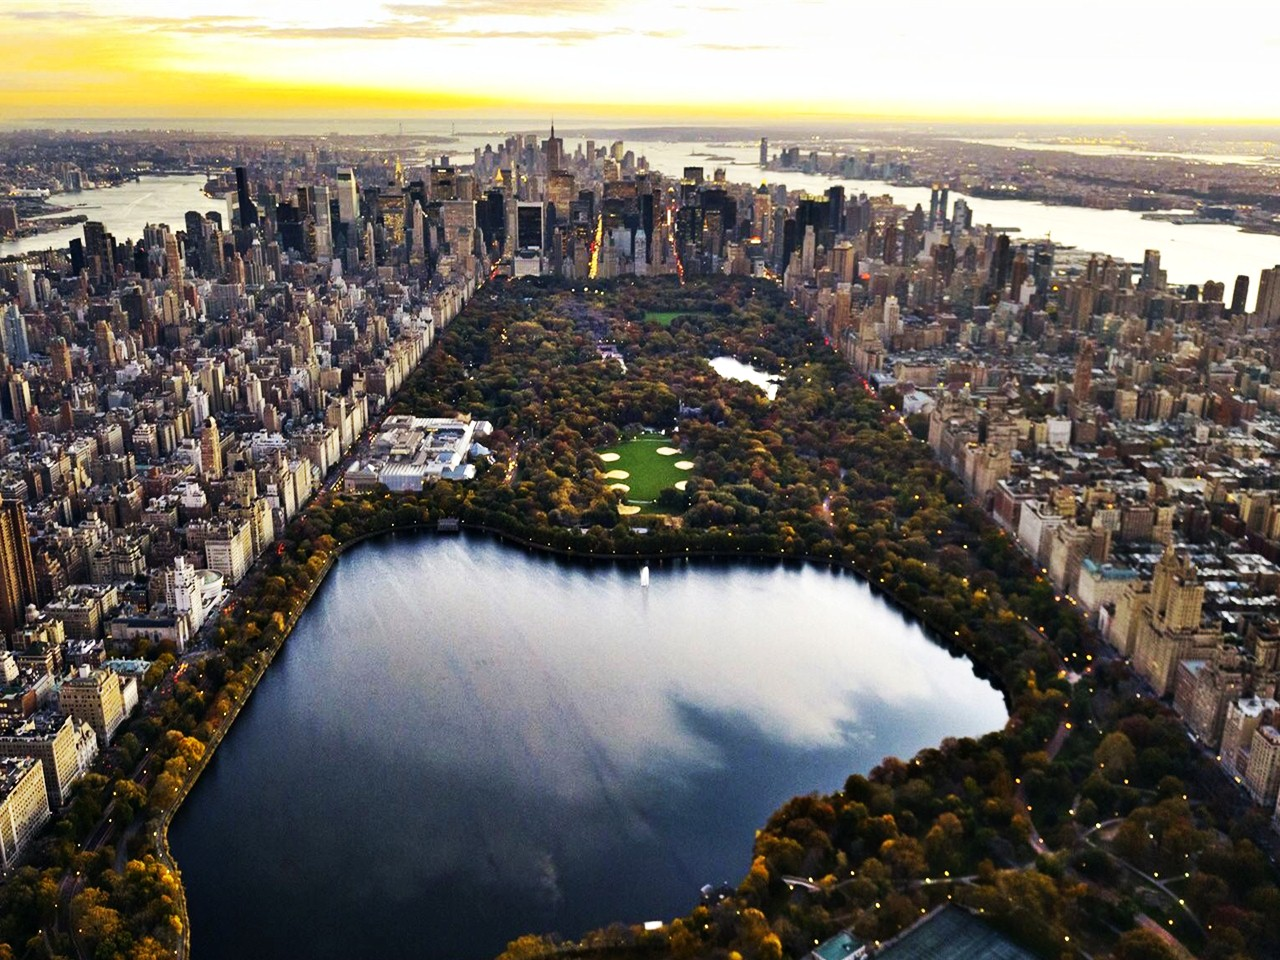 As one of America's greatest works of art and the nation's first public park, Central Park has become the most famous and beloved urban park in the world.